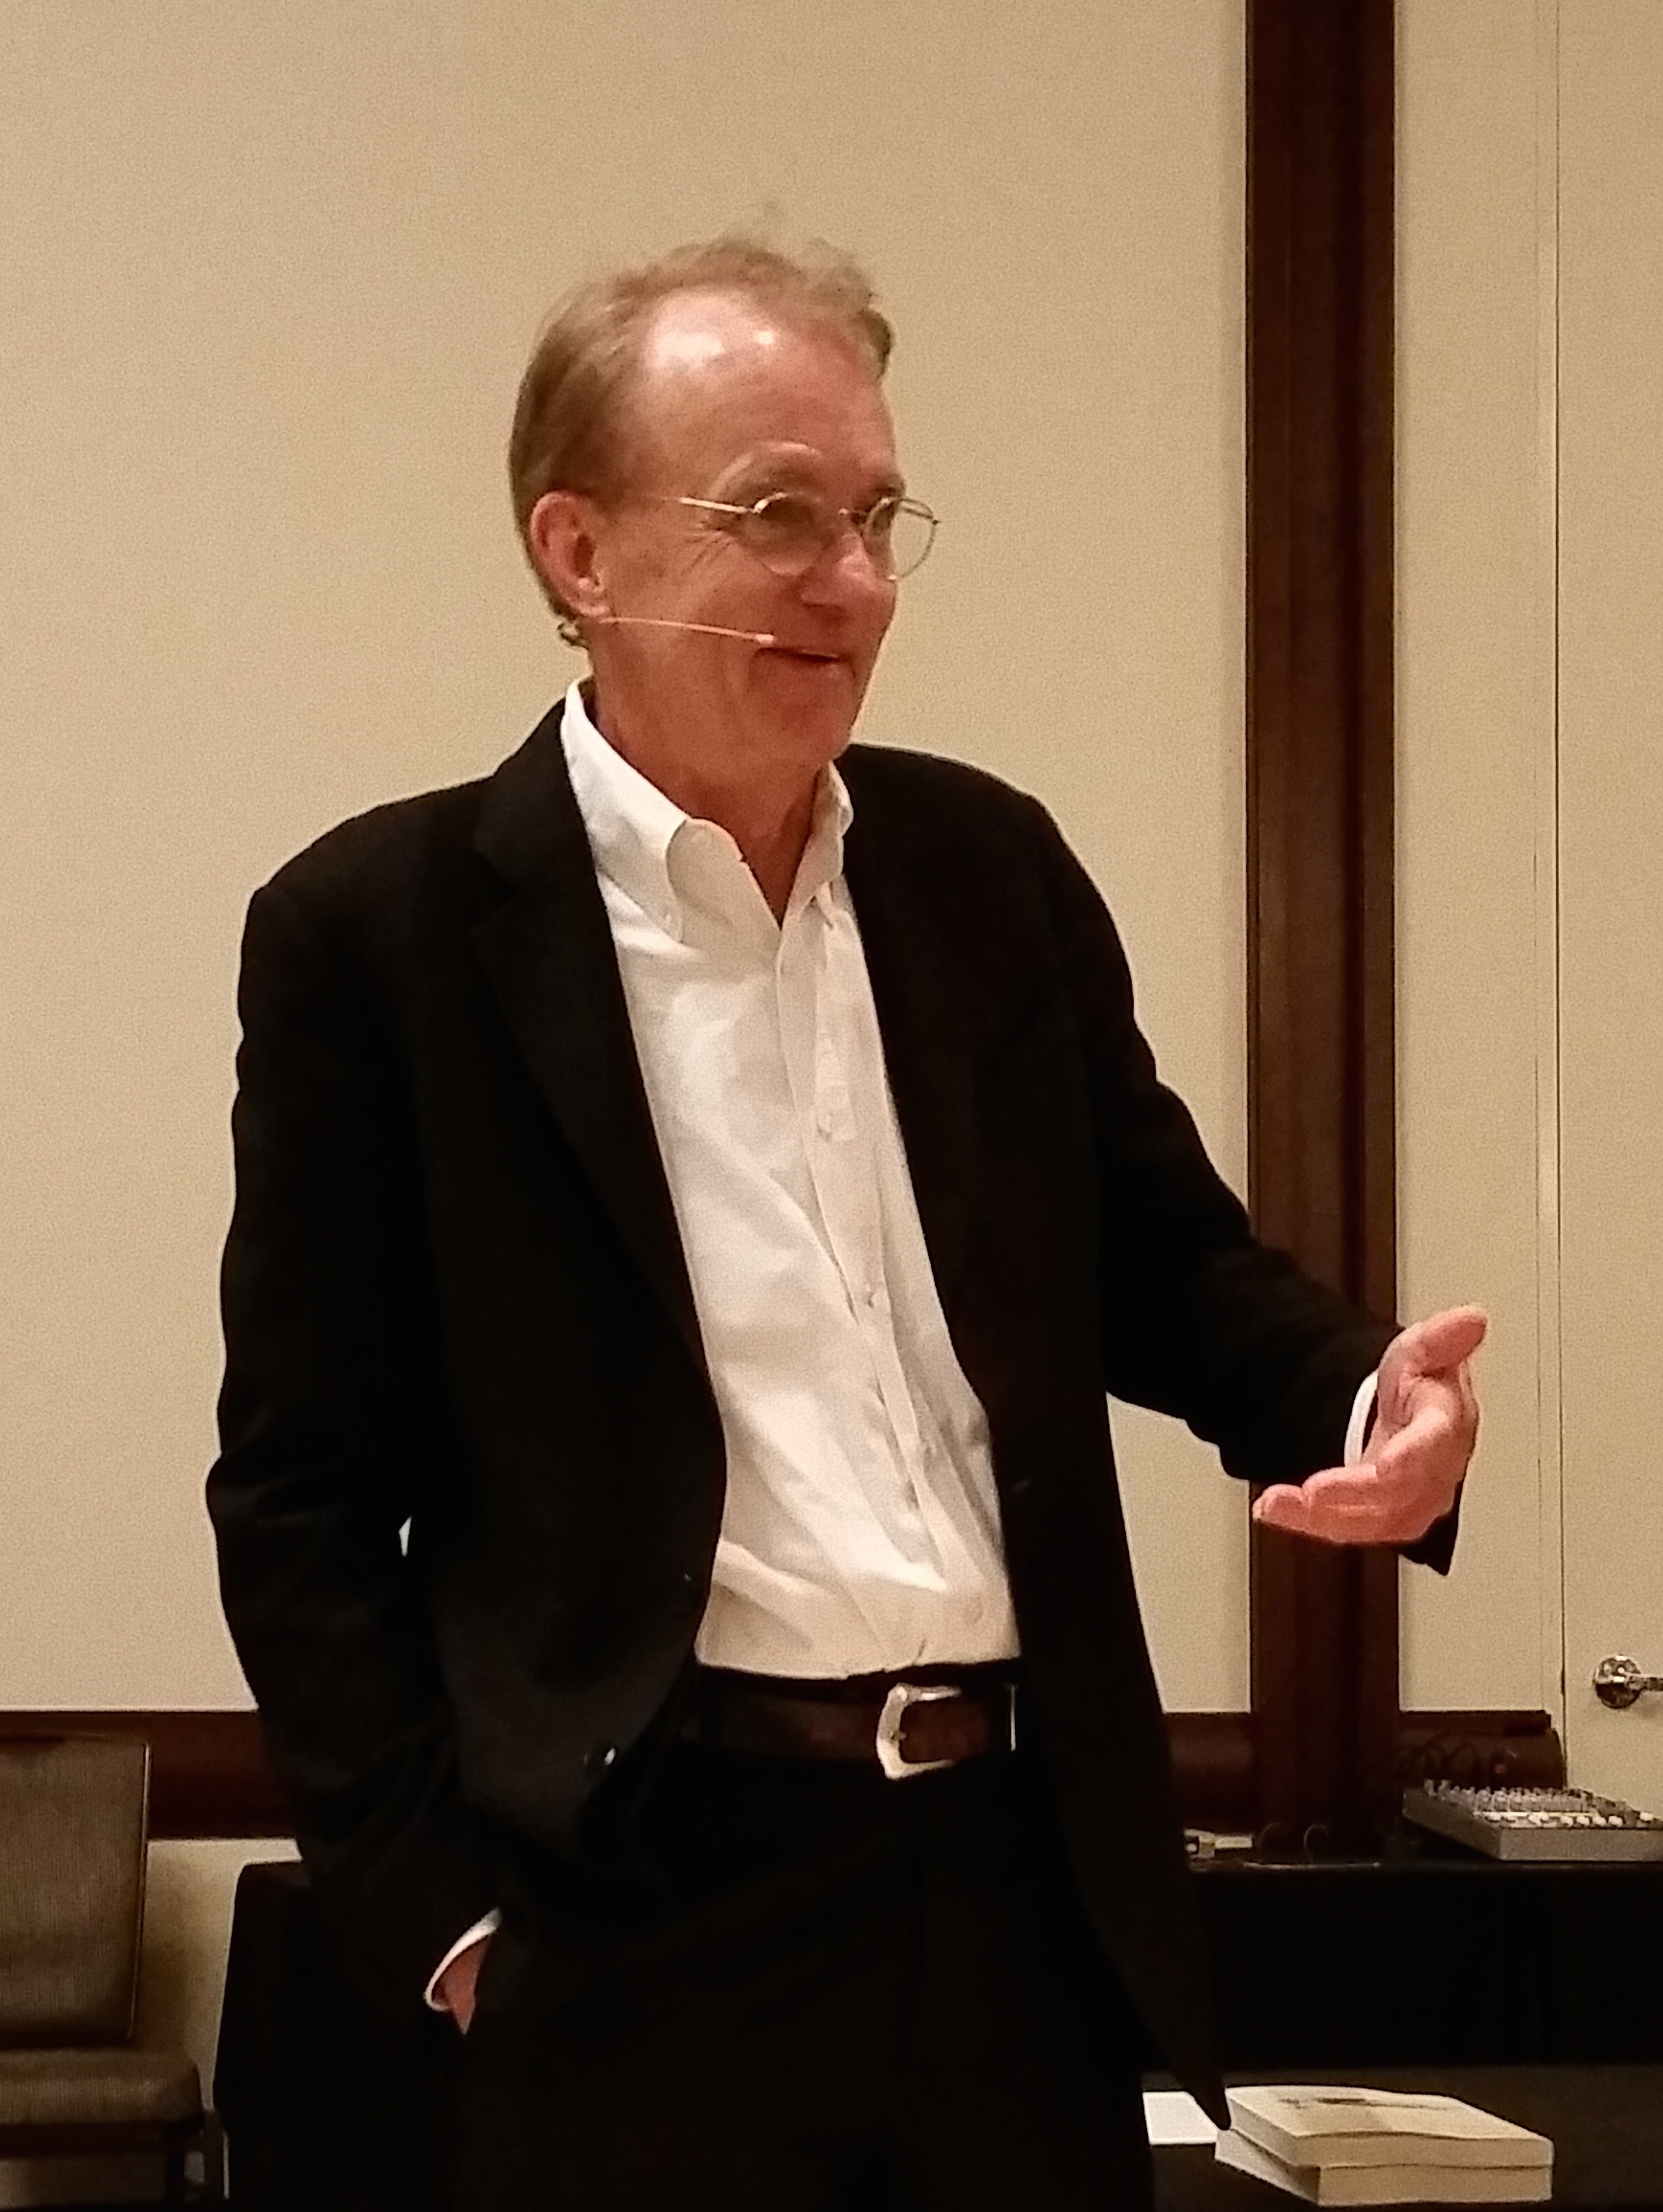 Tufte during his one-day course in Dallas, May 21, 2015